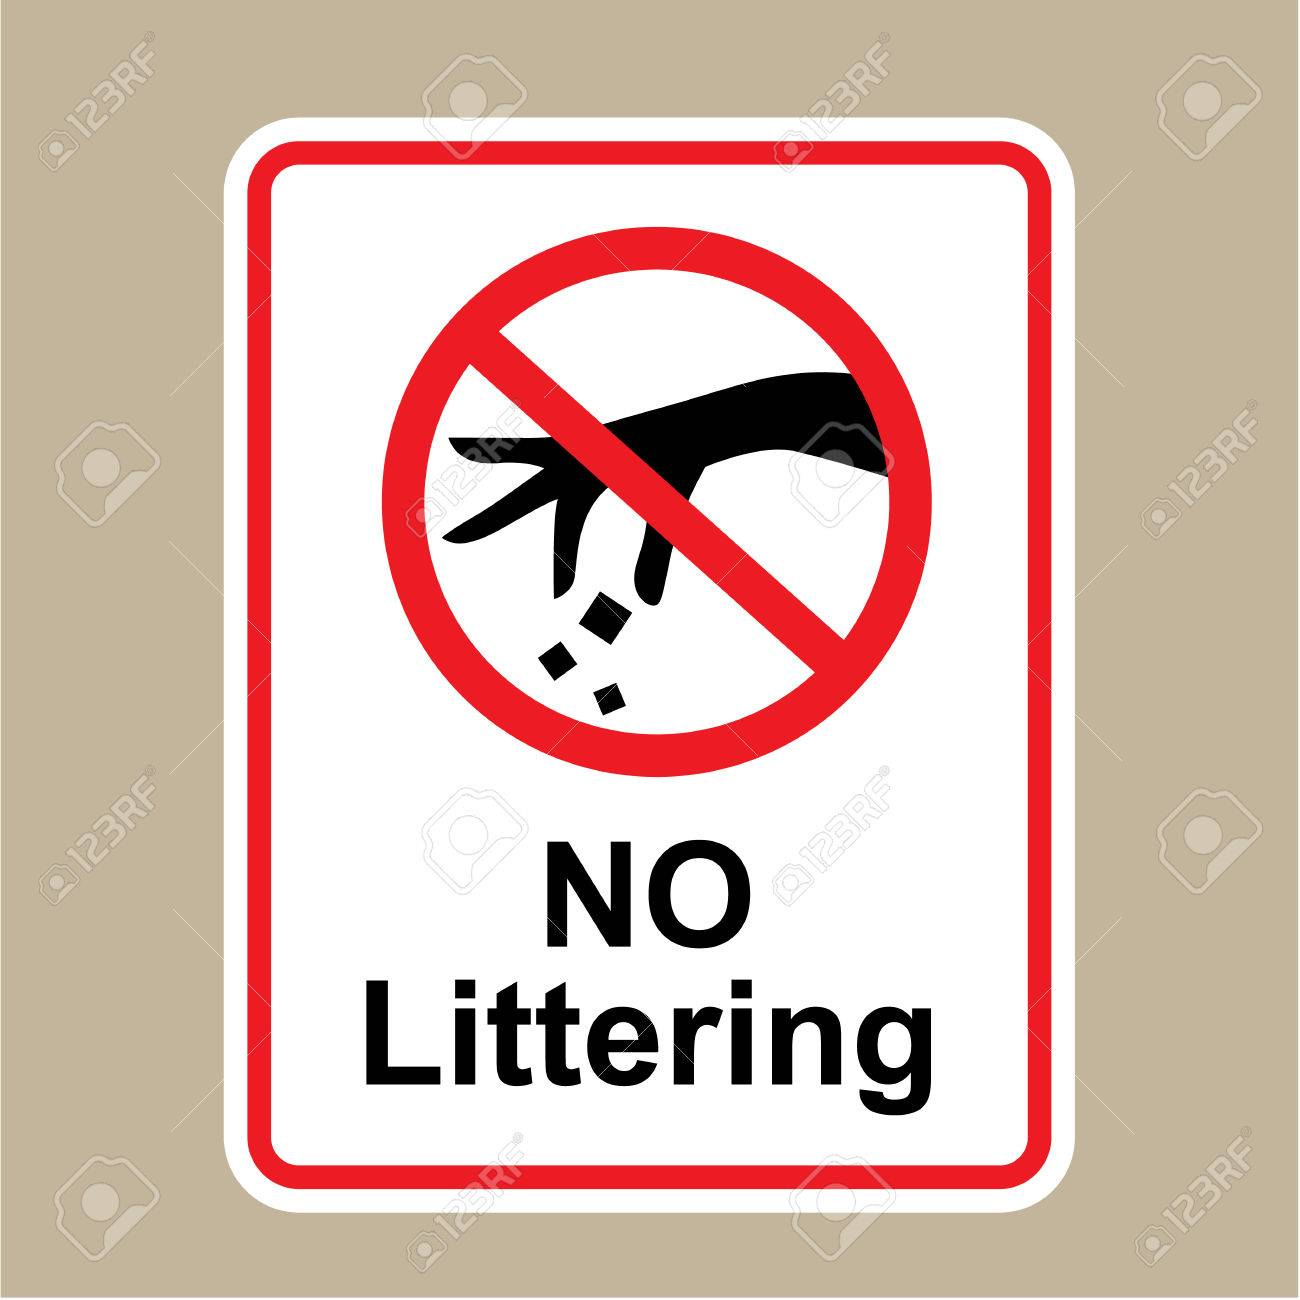 No Littering sign vector illustration clip.